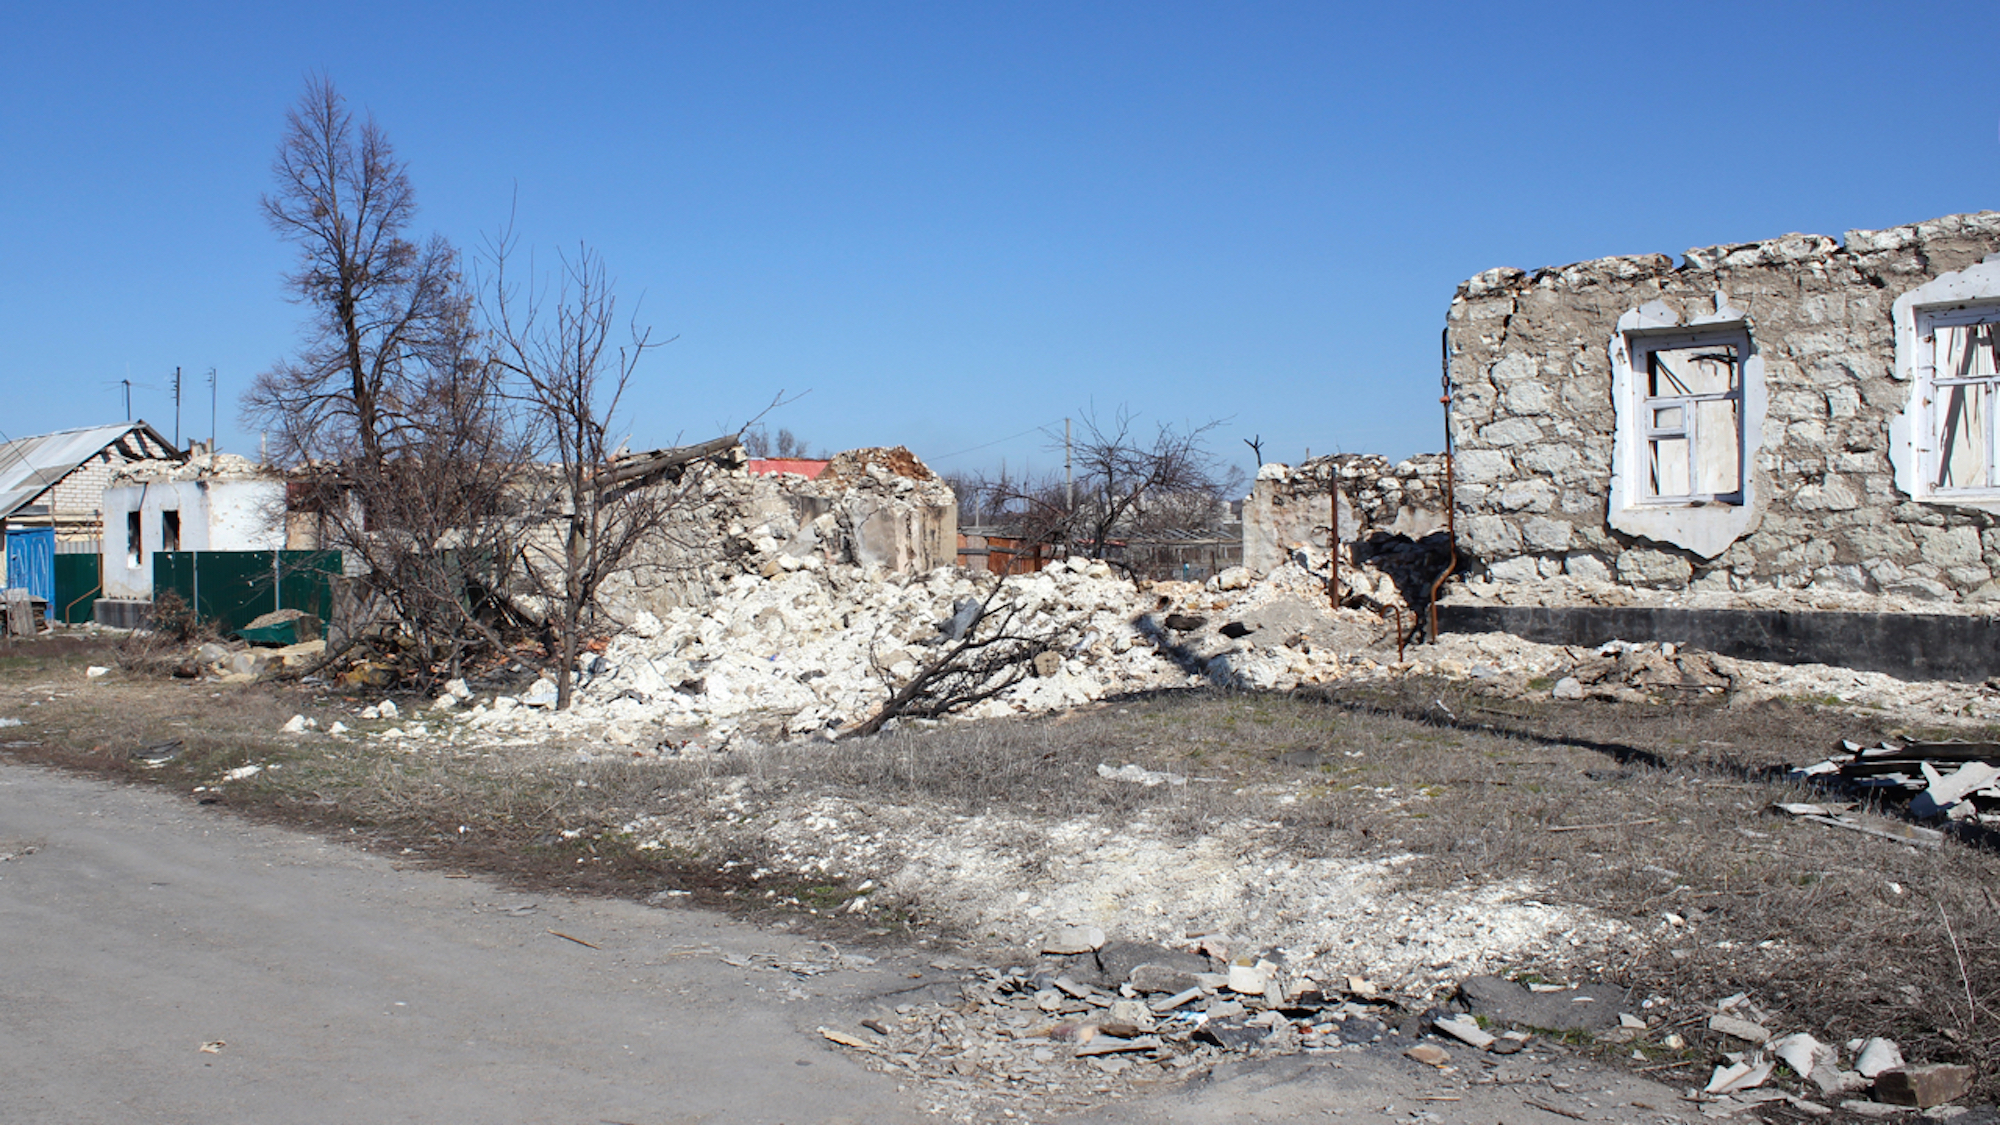 The town of Novosvitlivka was badly destroyed by shelling in 2014 when it was on the frontline of the war in Ukraine. Aid is struggling to reach civilians in parts of the rebel-held east, where a humanitarian crisis has unfolded on Europe's doorstep.